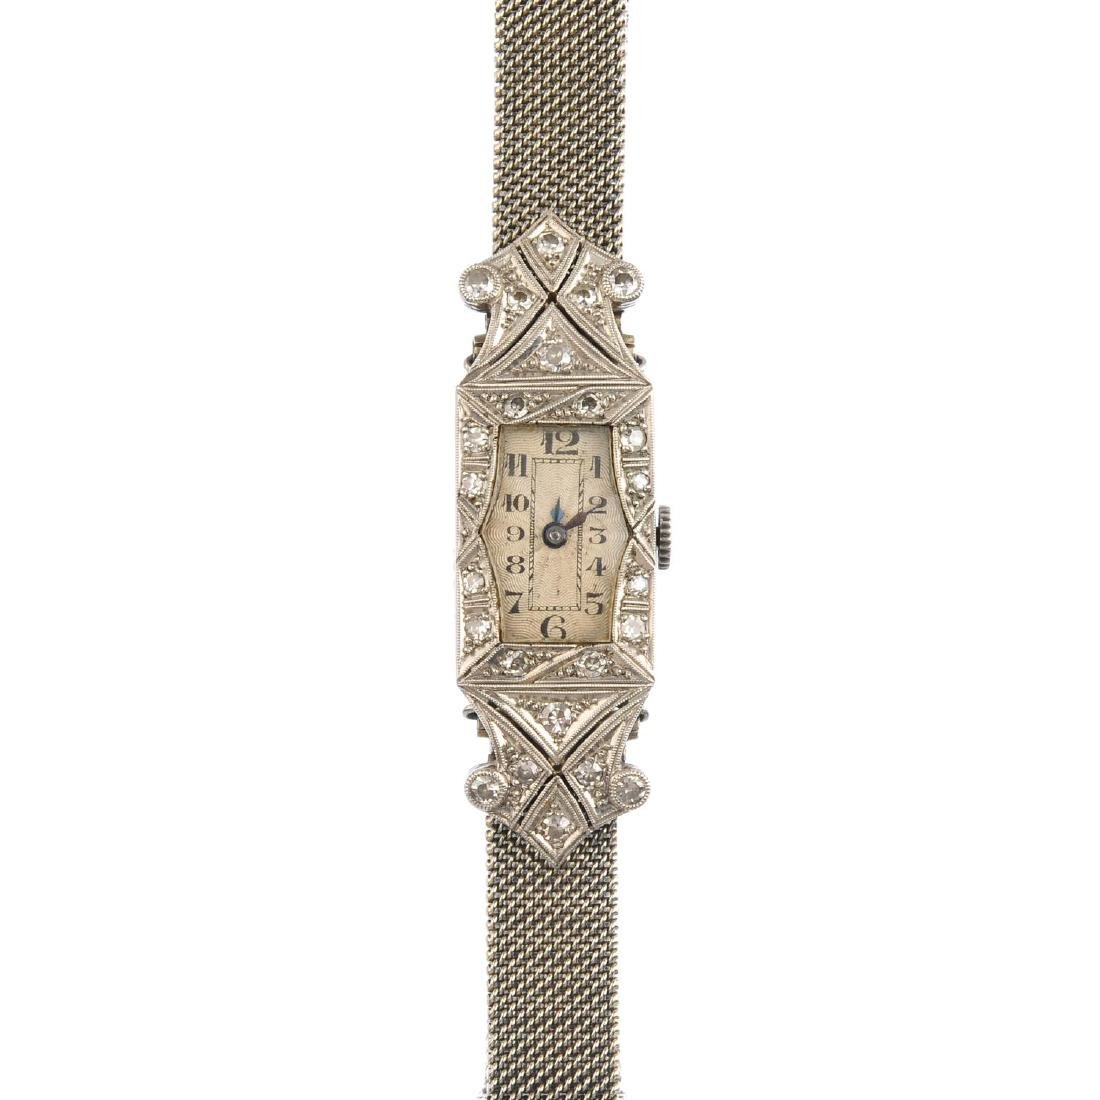 An early 20th century platinum and 9ct gold diamond